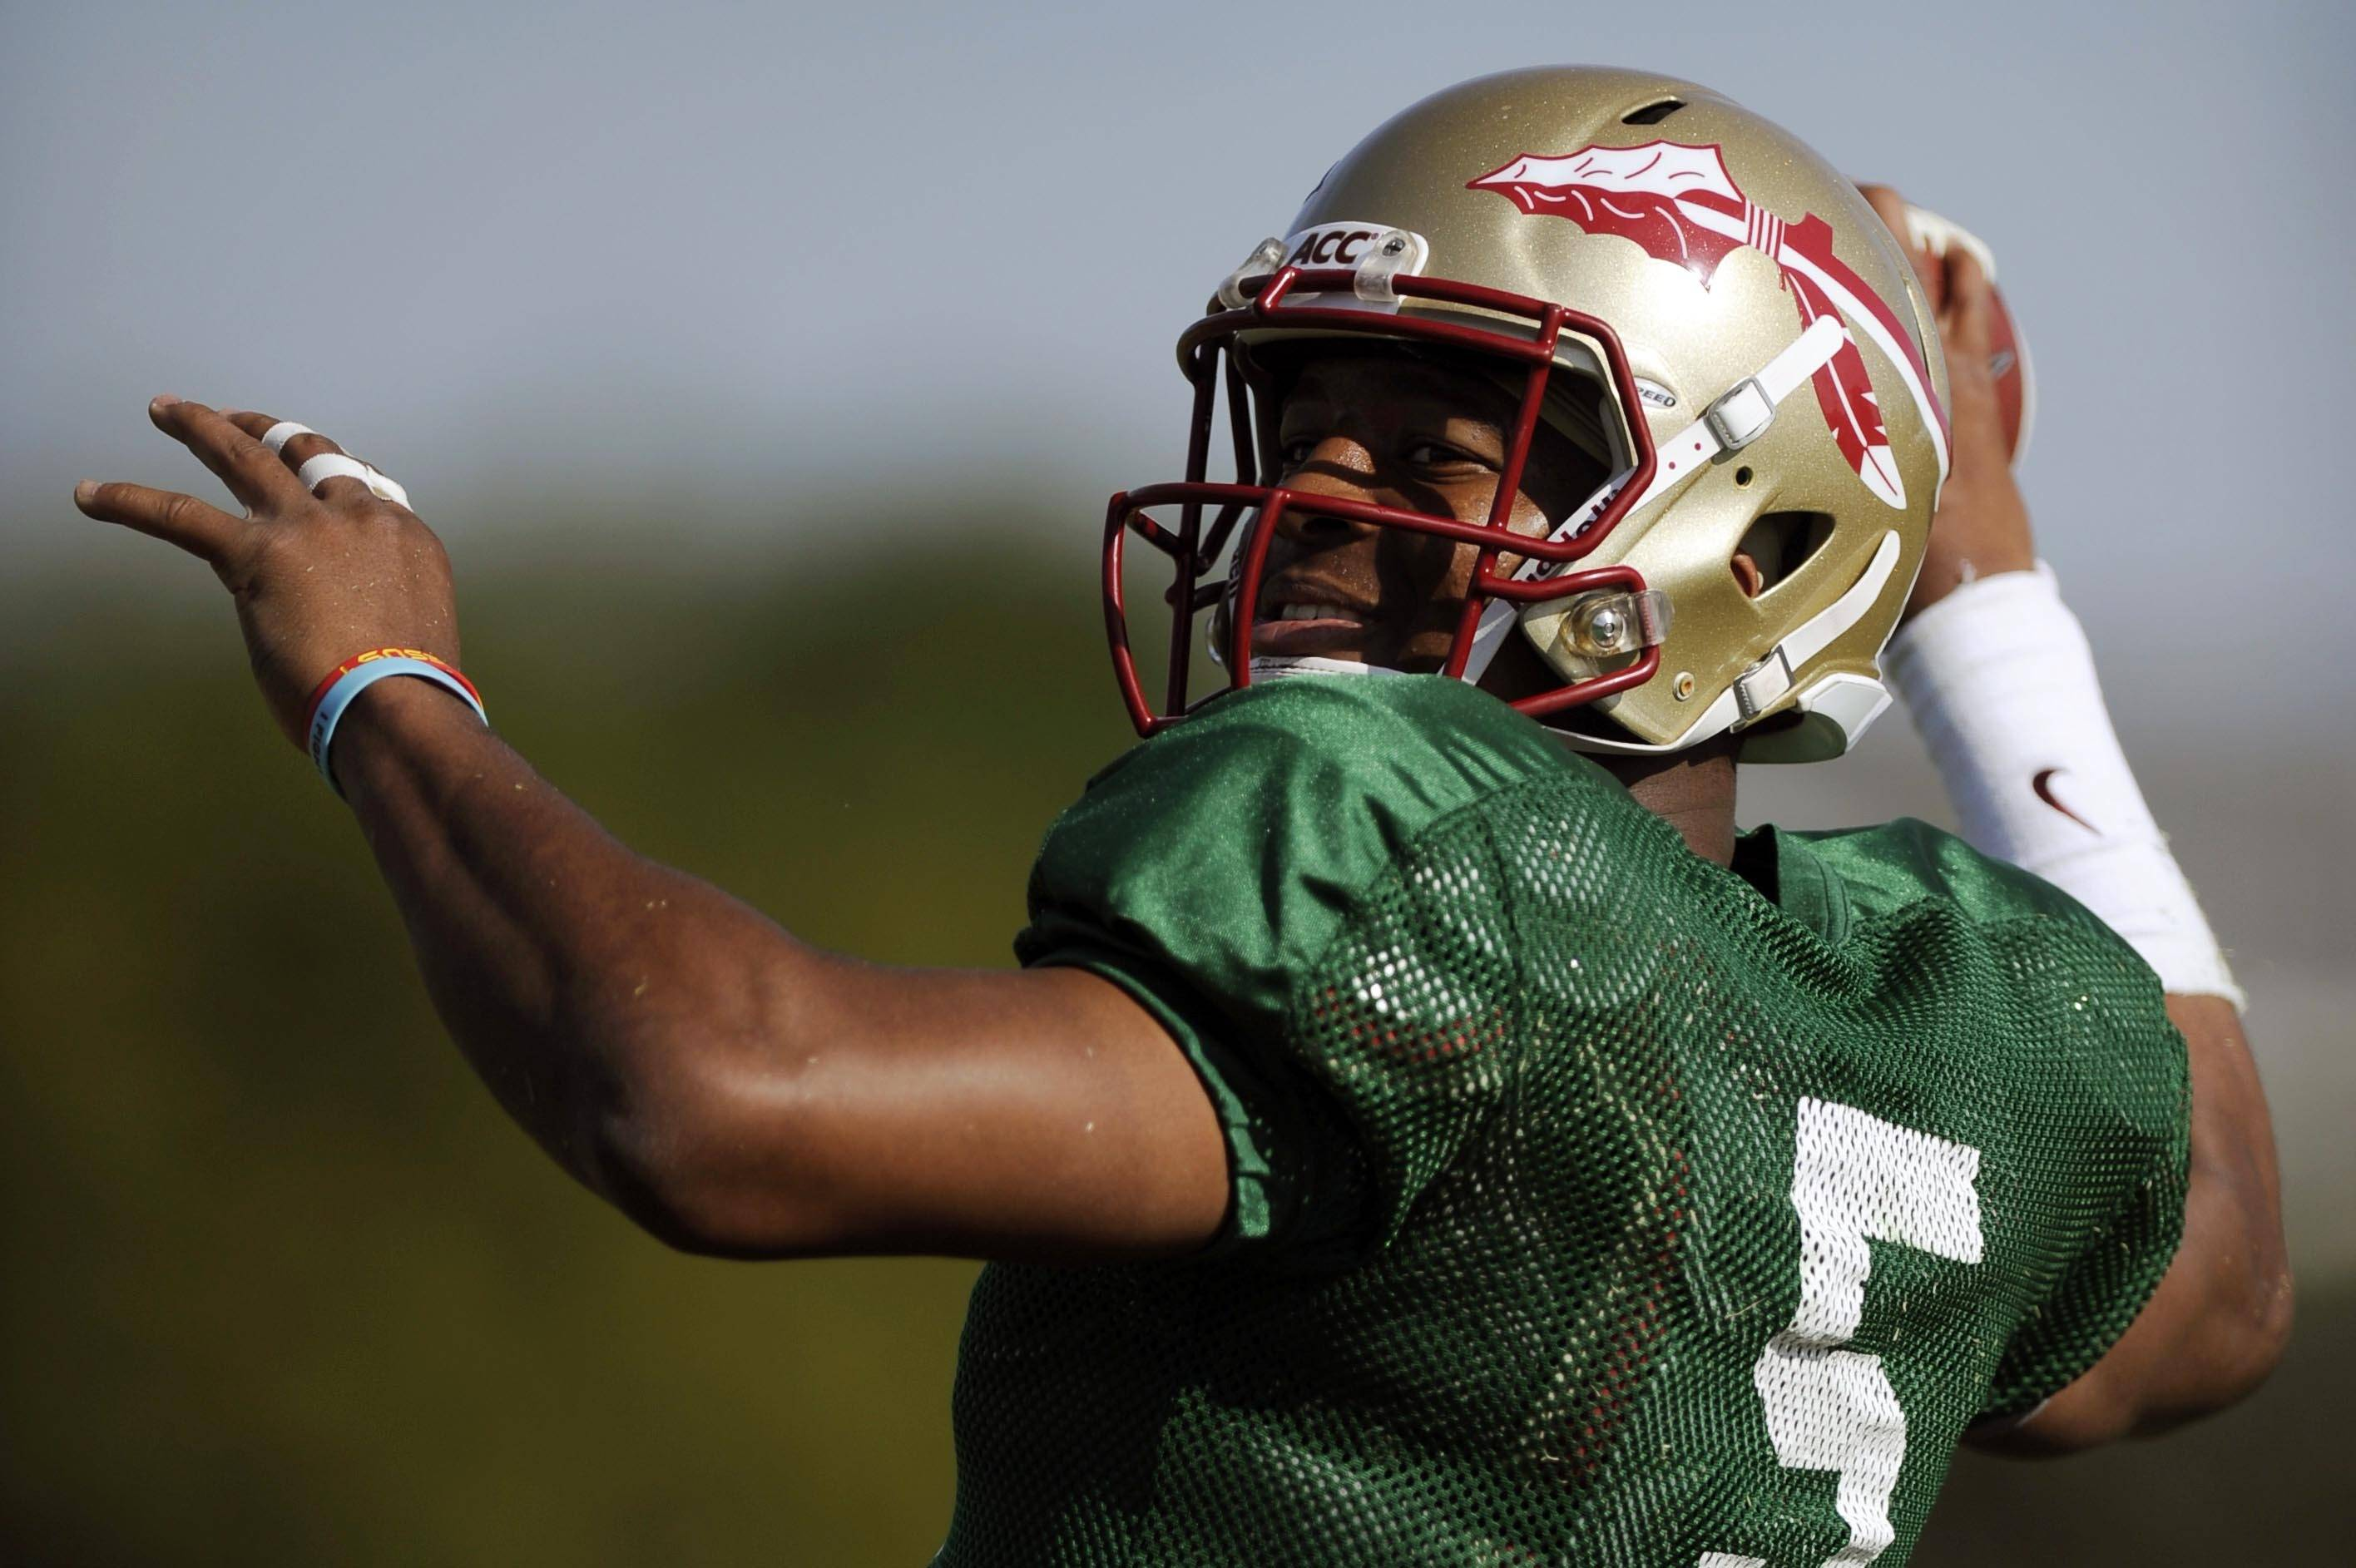 Jan 3, 2014; Orange, CA, USA; Florida State Seminoles quarterback Jameis Winston (5) during practice for the BCS National Championship football game against the Auburn Tigers at Orange Coast College. Mandatory Credit: Kelvin Kuo-USA TODAY Sports